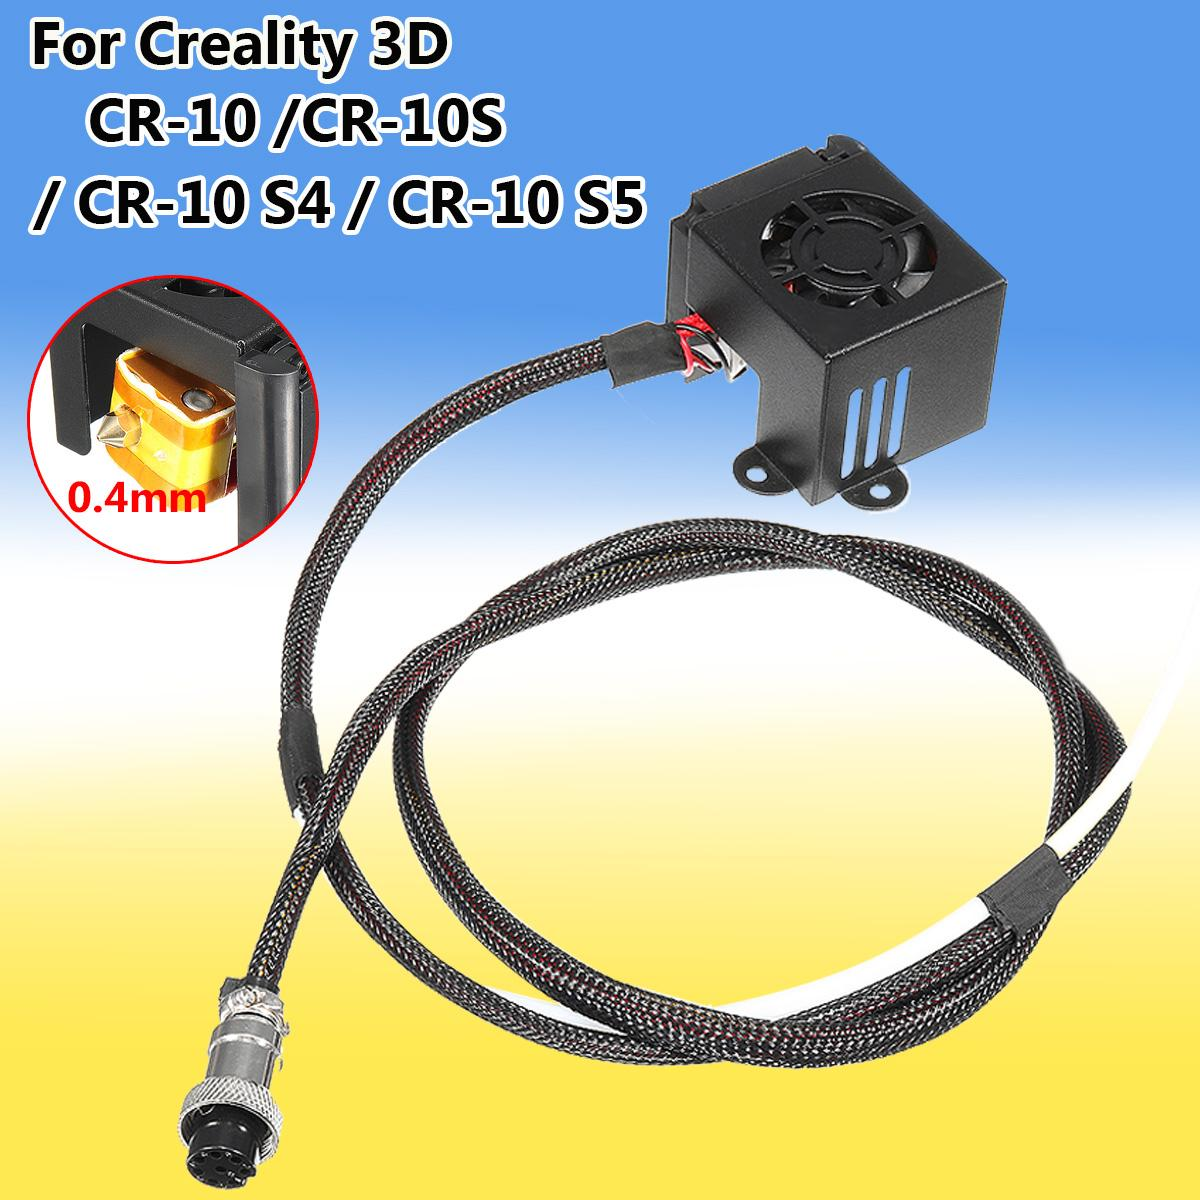 3D Printer Parts 0.4mm Nozzle MK8 Hot End Extruder Kits With Cooling Fan For Creality CR-10 3pcs lot 3d printer parts assembled mk8 extruder hot end kit nozzle 0 2 0 3 0 4 0 5mm 12v 0 4mm accessories for creality 3d cr 7